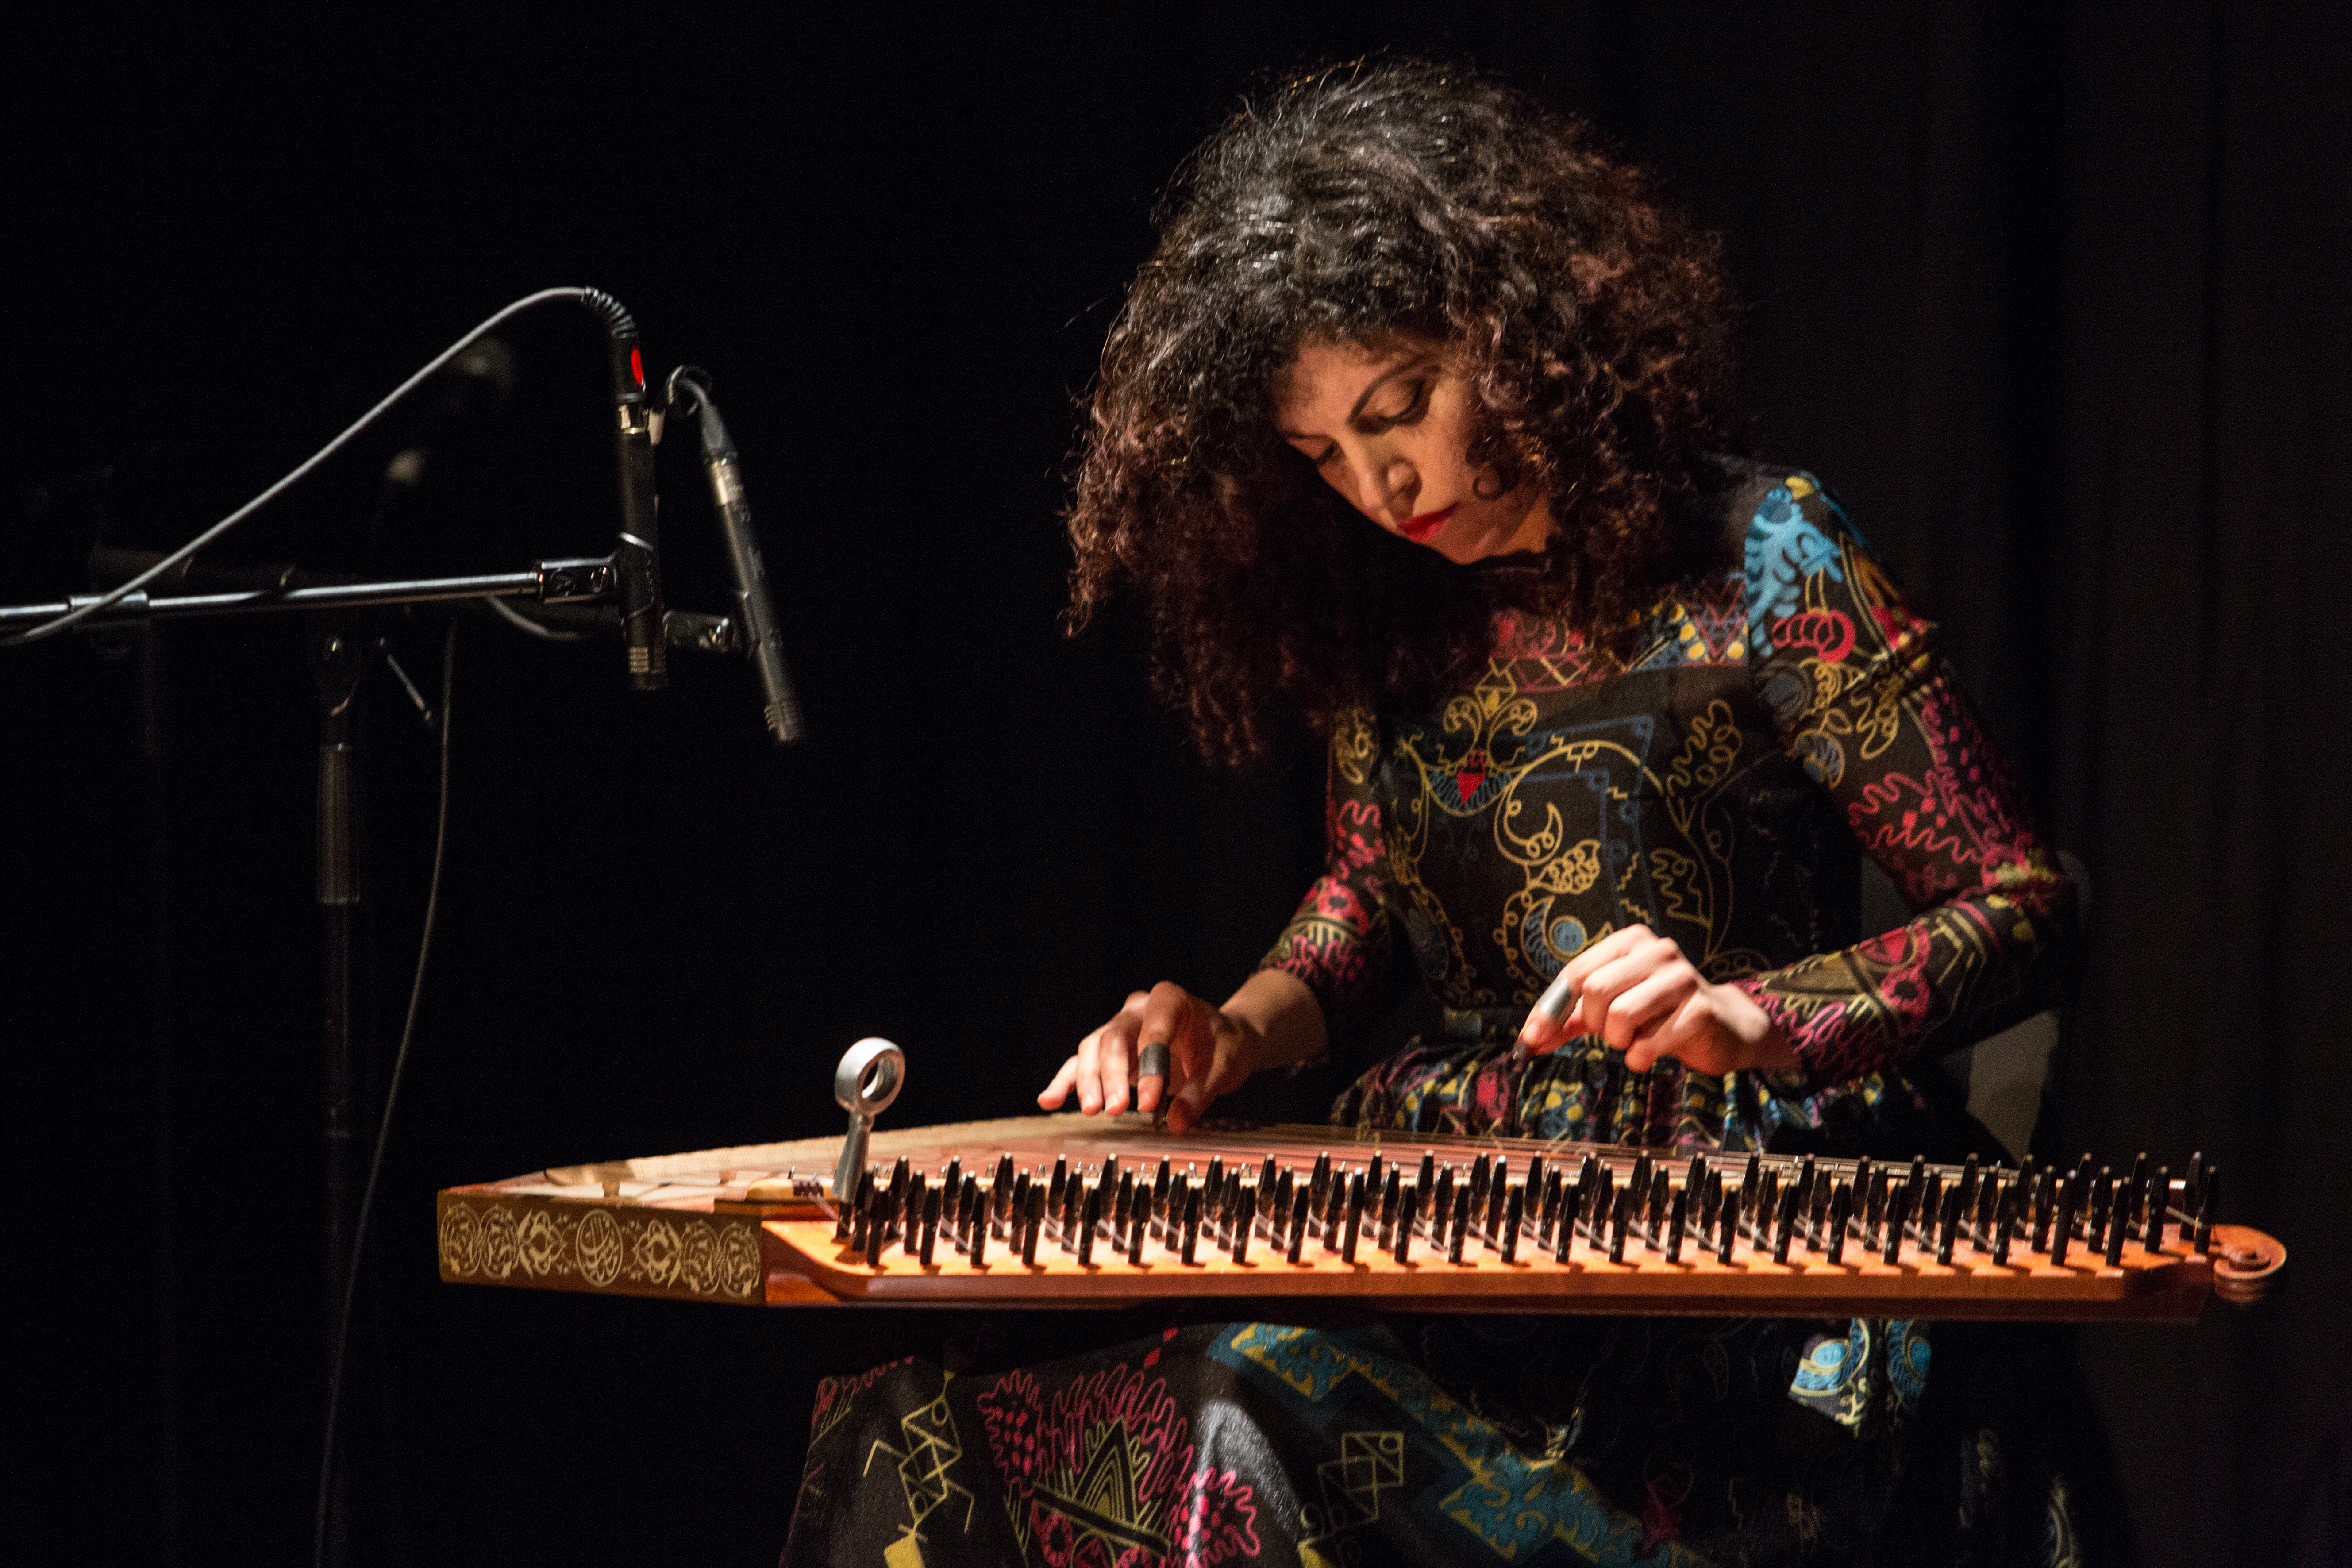 A musician plays a stringed instrument on her lap against a dark background